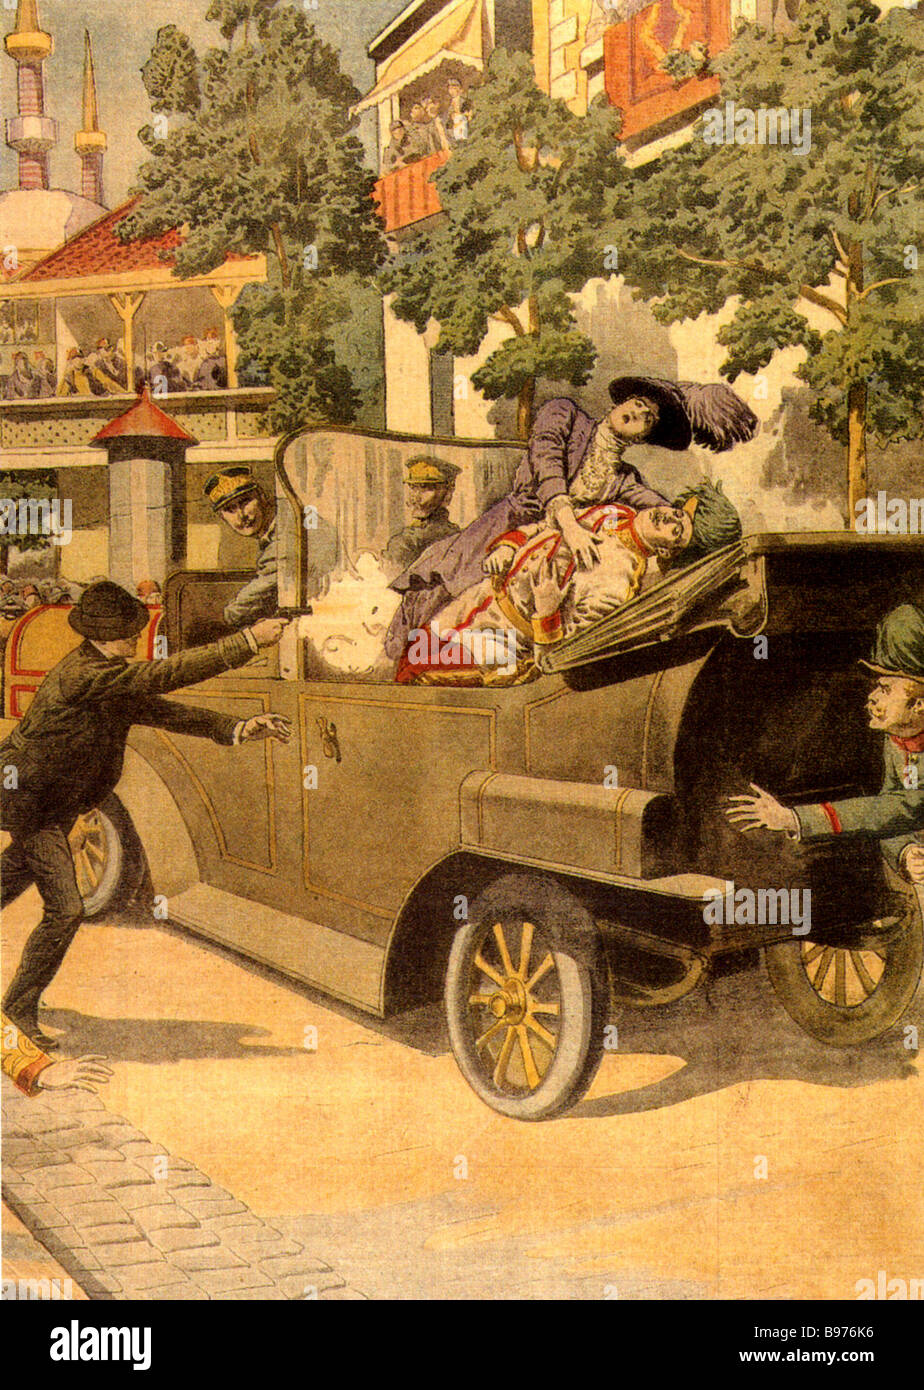 ASSASINATION OF AUSTRIAN ARCHDUKE FRANZ FERDINAND and his wife by Gavrilo Princip in Sarajevo on 28 June 1914 in - Stock Image